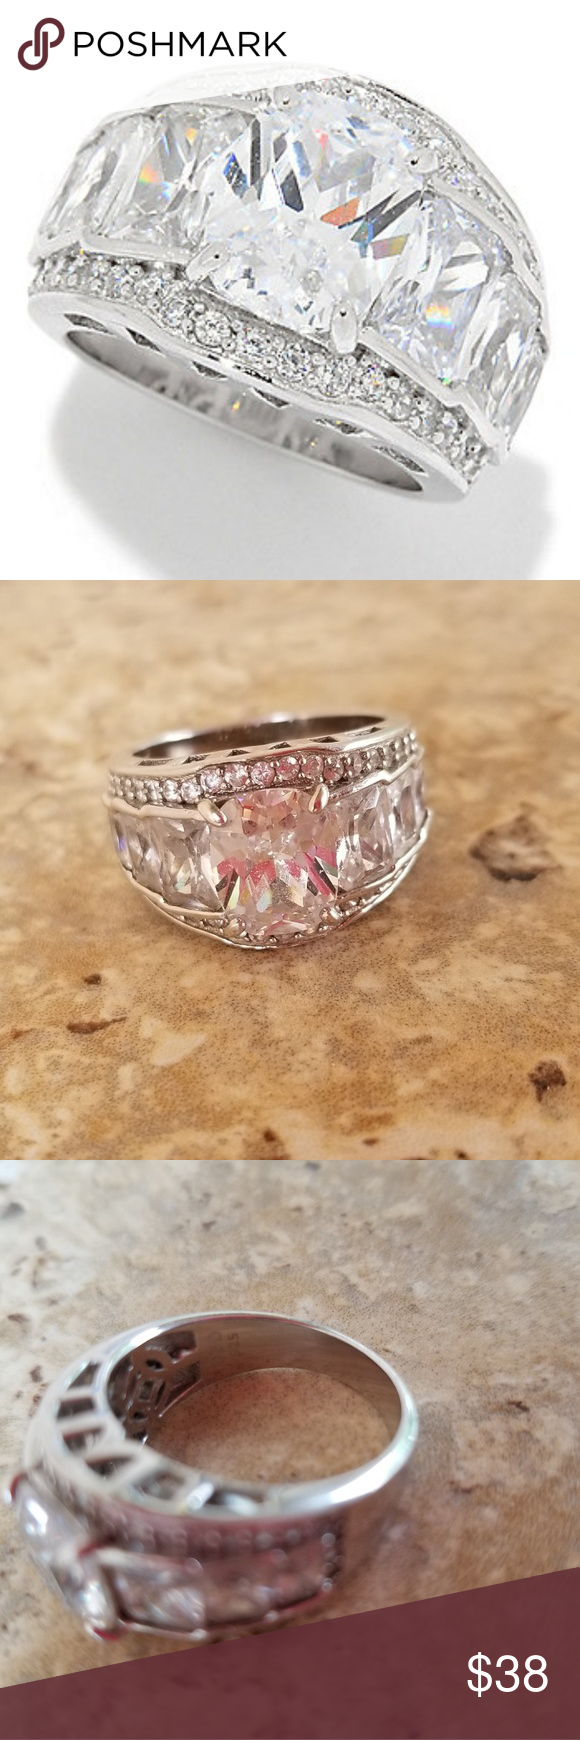 Paula Deen Sterling Silver Bling Ring Size 9 Great Condition